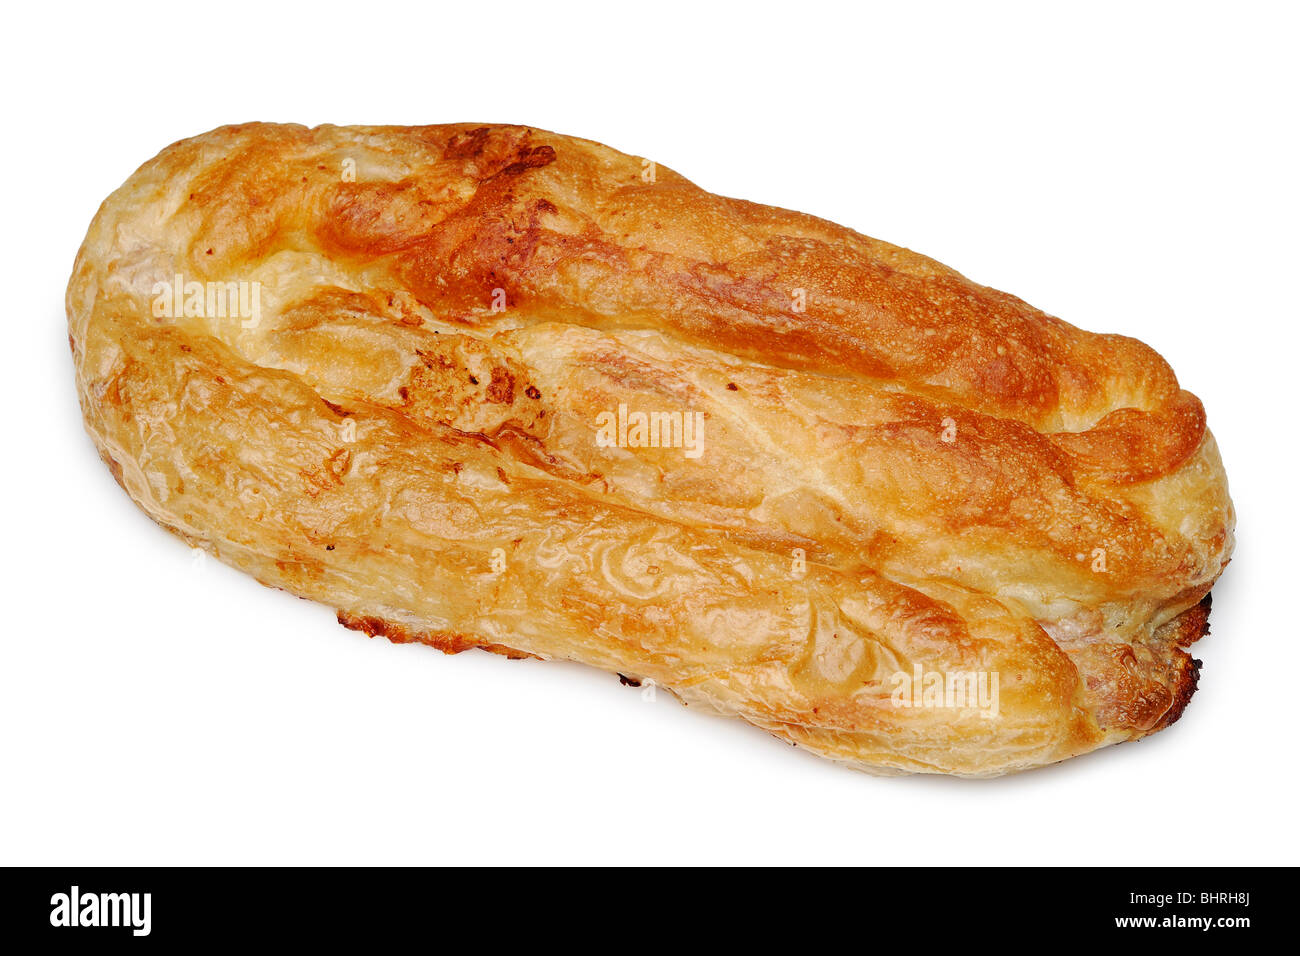 Burek a Traditional Meat Filled Pastry Dish from Bosnia and Herzegovina - Stock Image